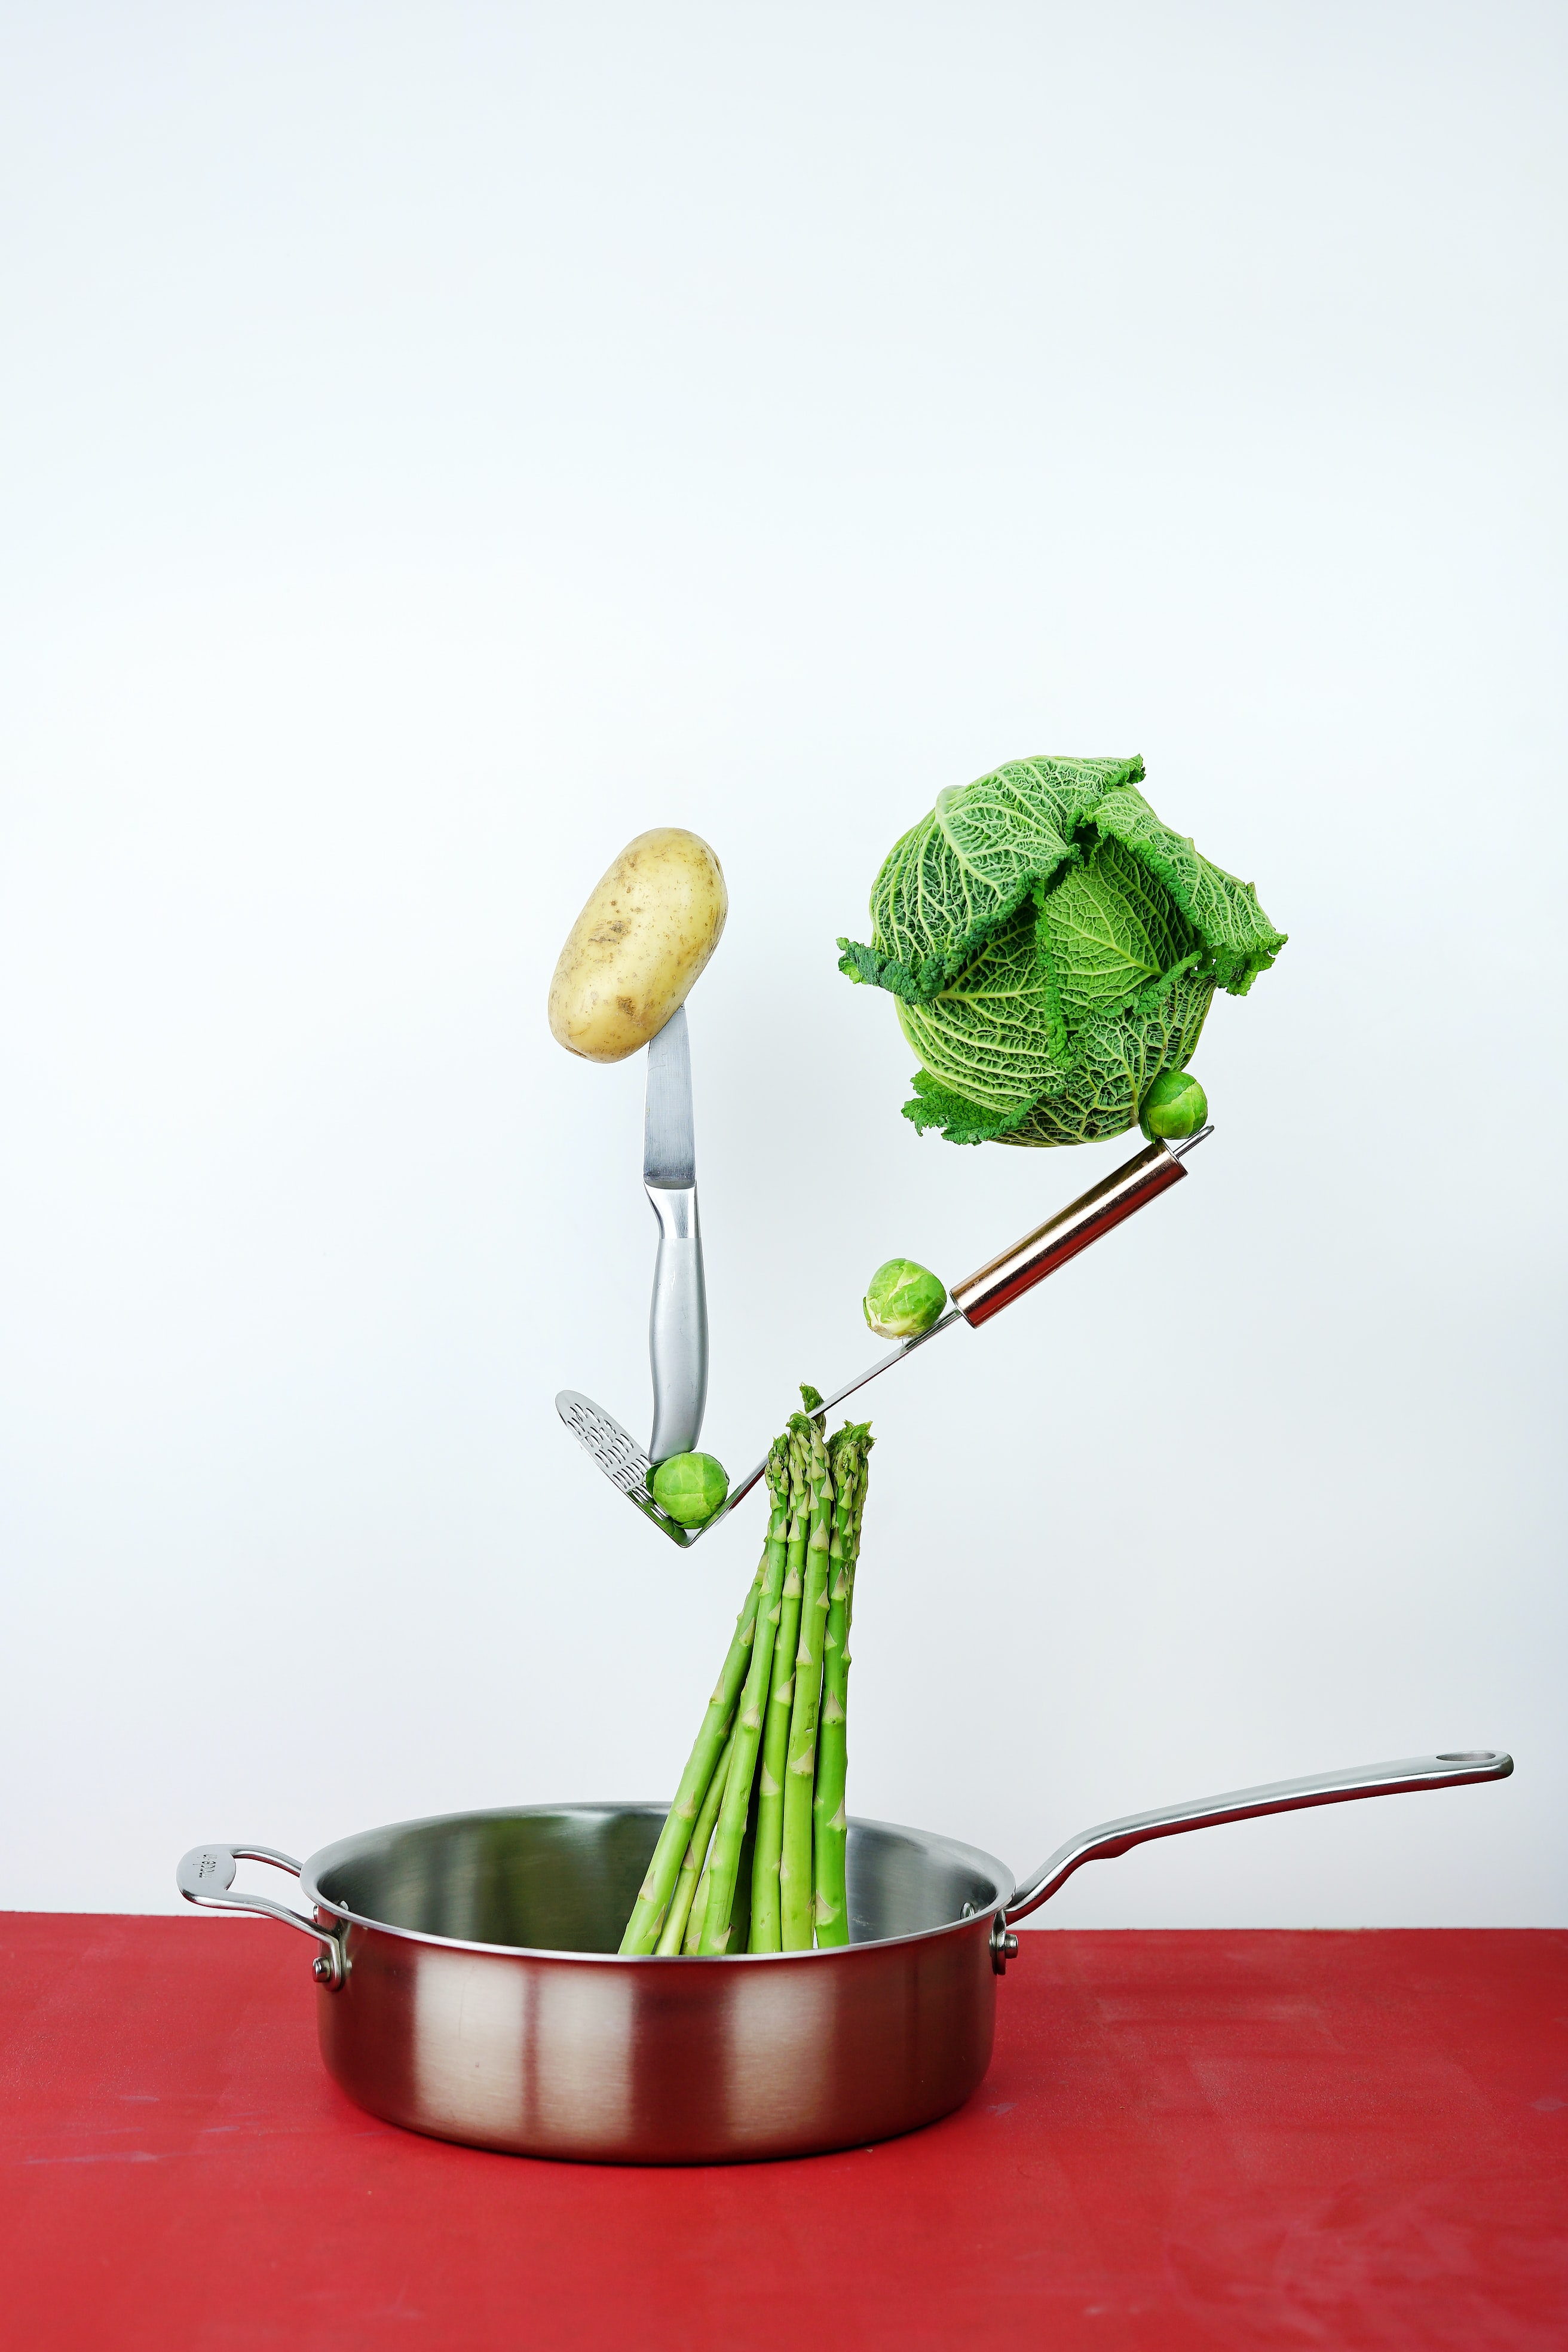 green cabbage and brown potato